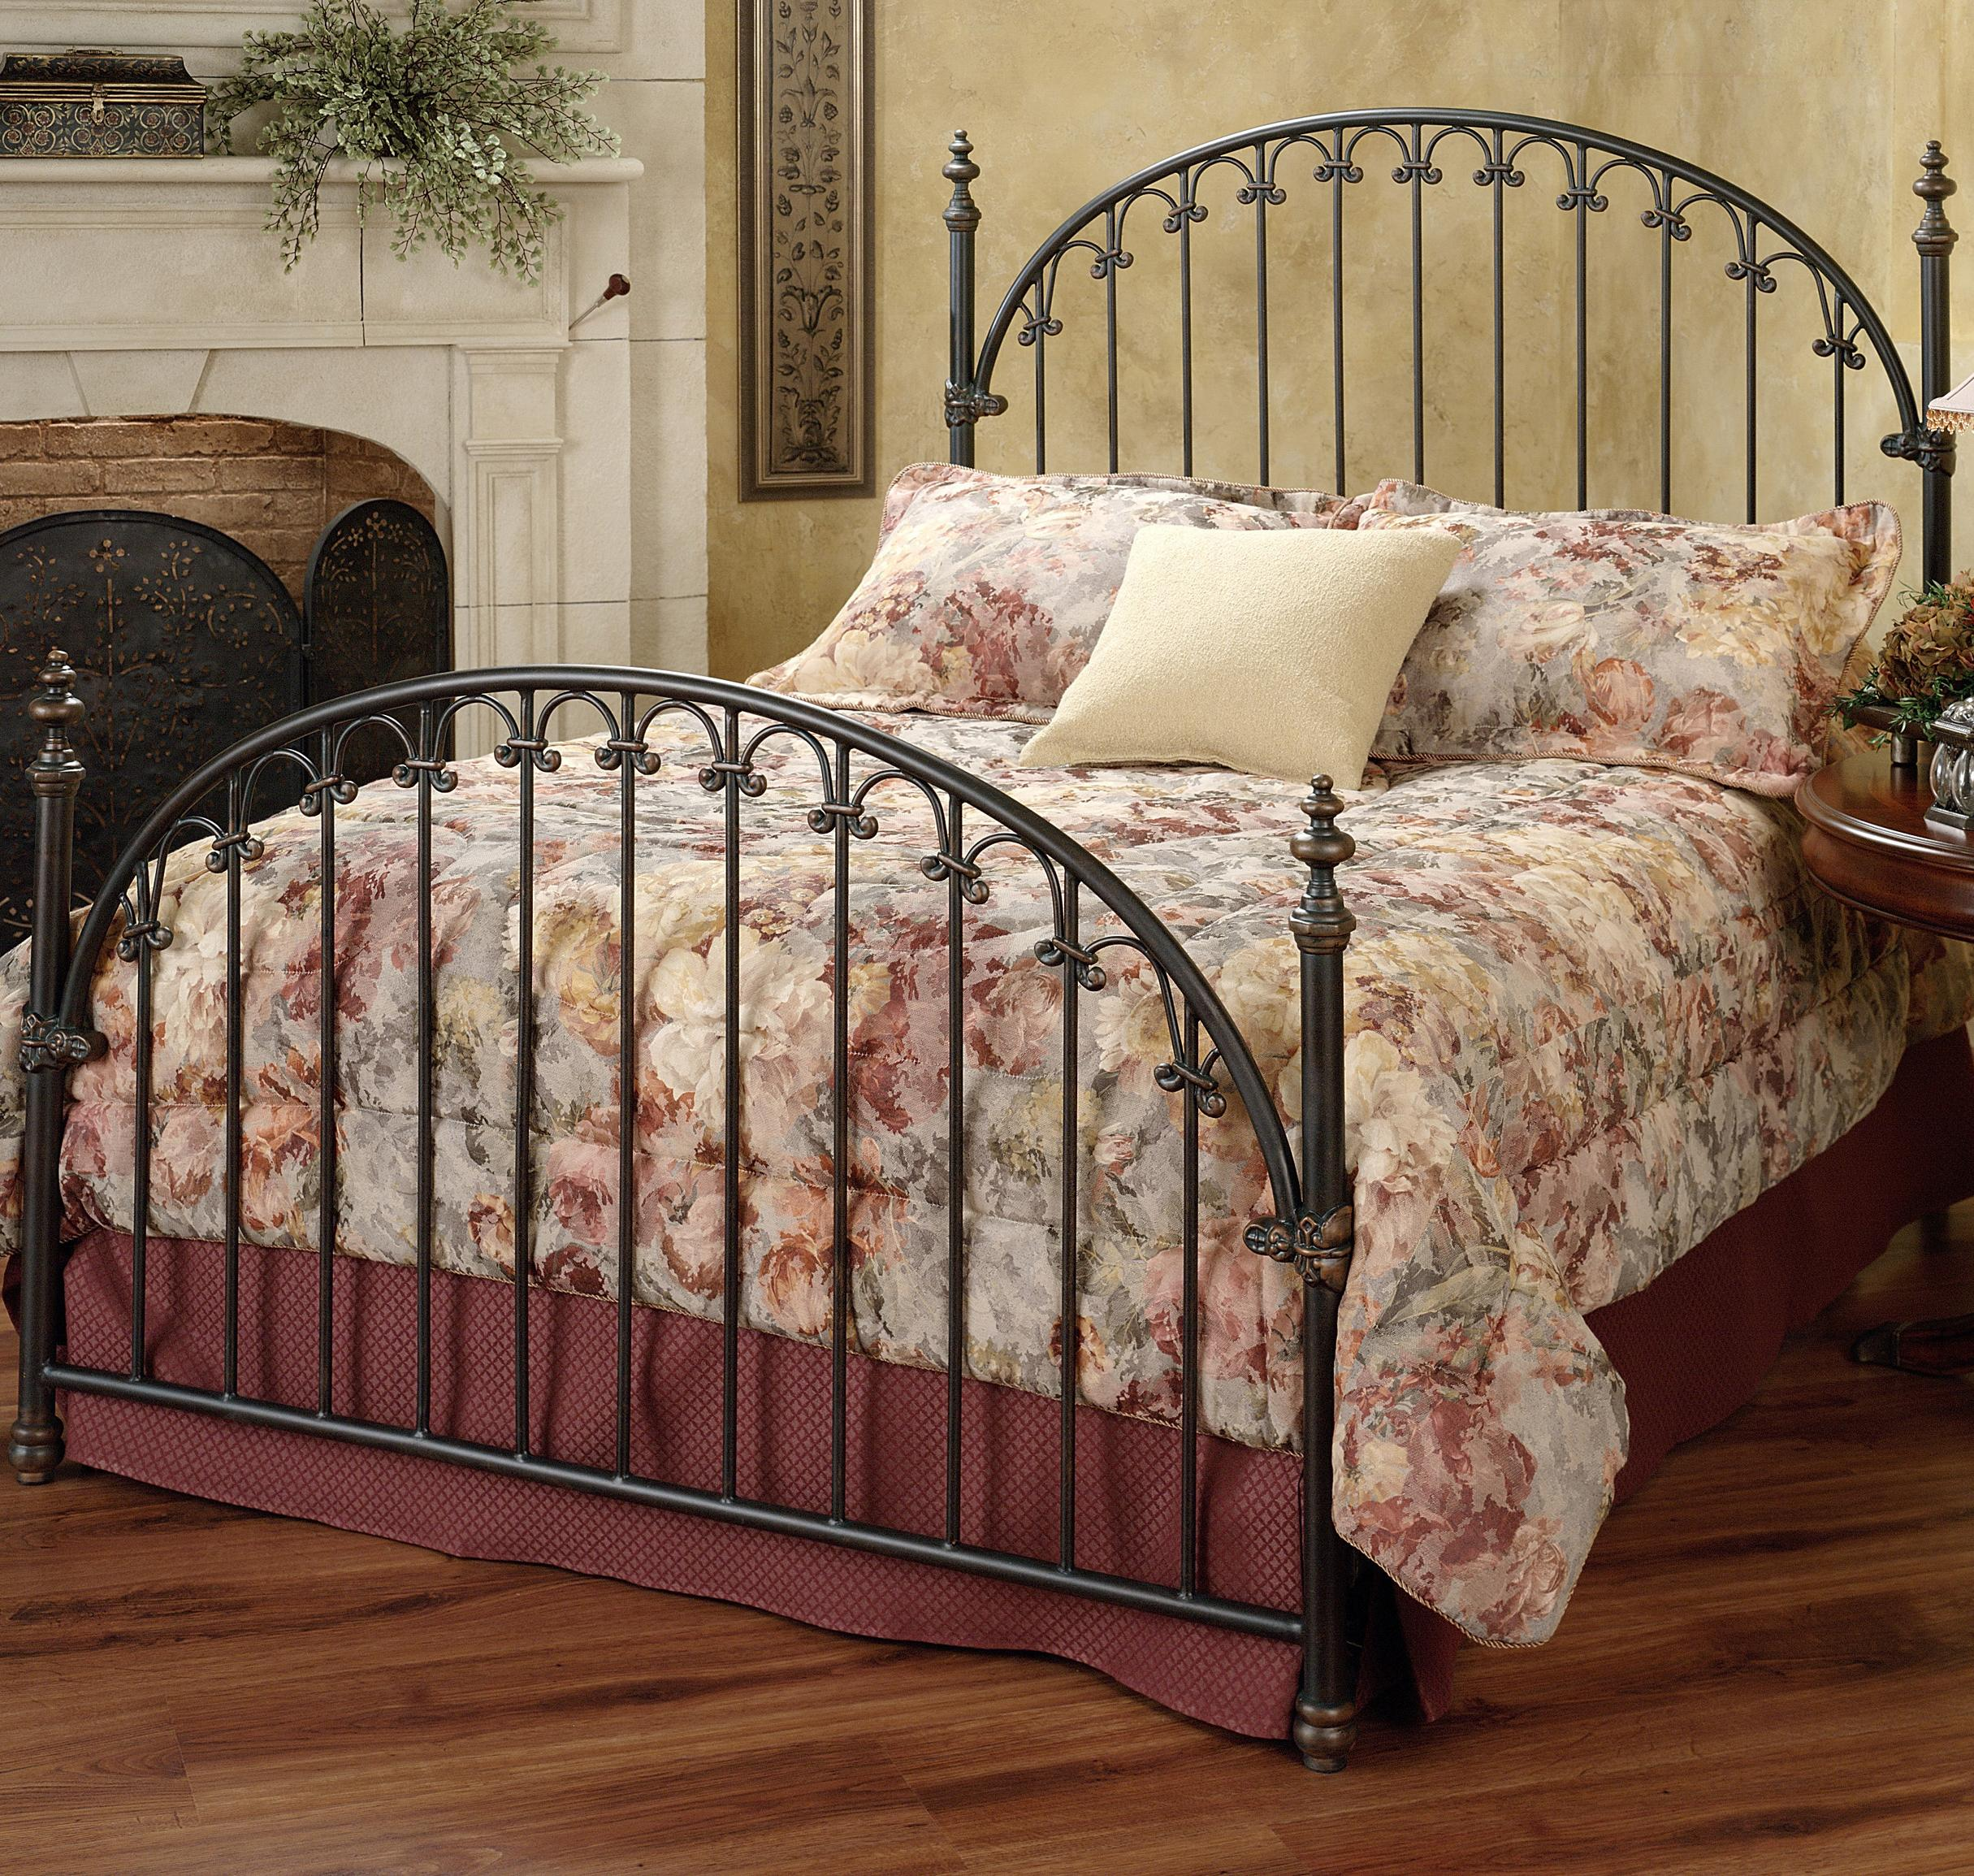 Hillsdale Metal Beds Full Kirkwell Bed - Item Number: 1038BFR